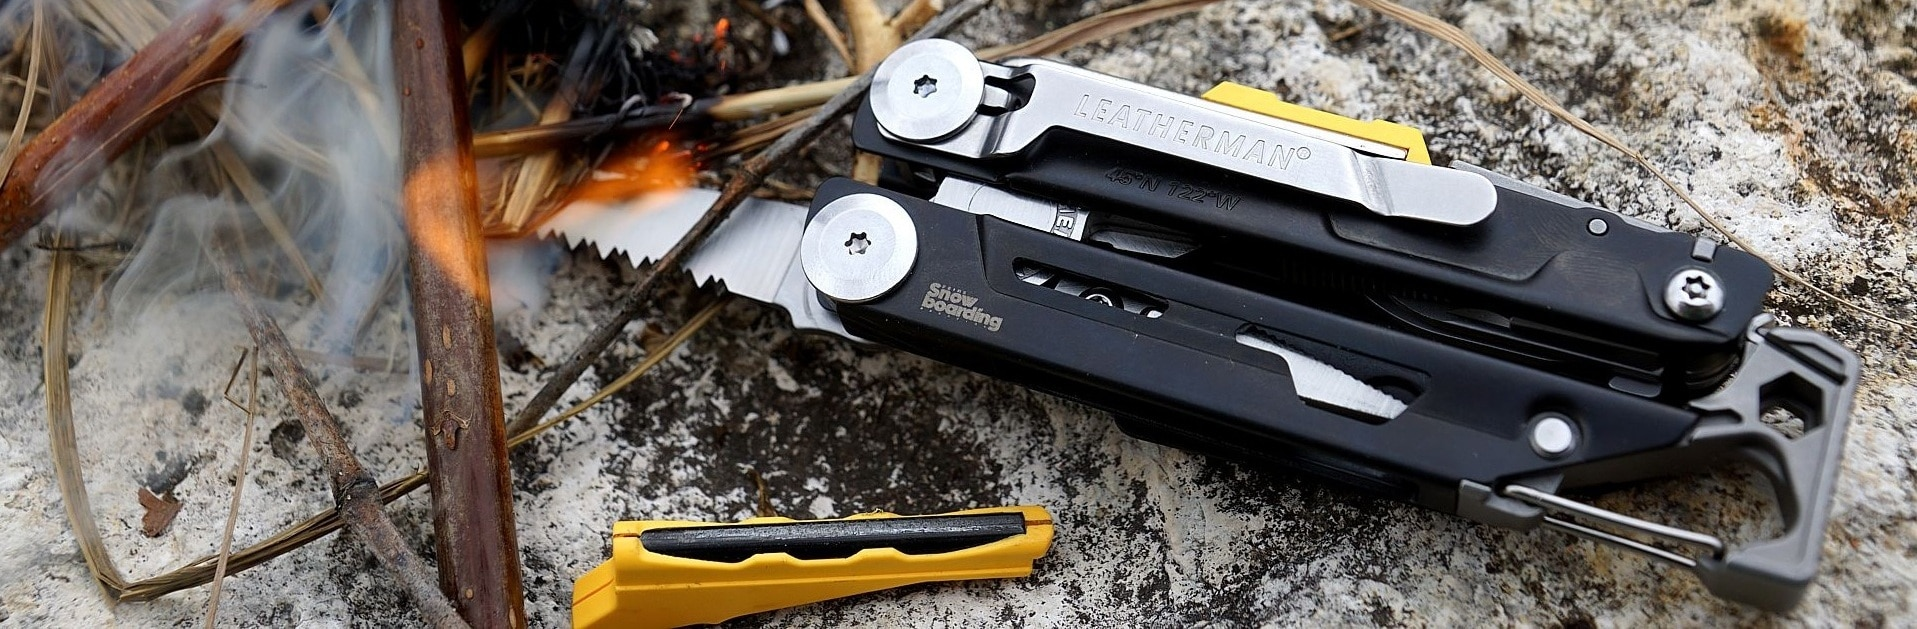 Best Multi Tools for Survival Reviewed in Detail